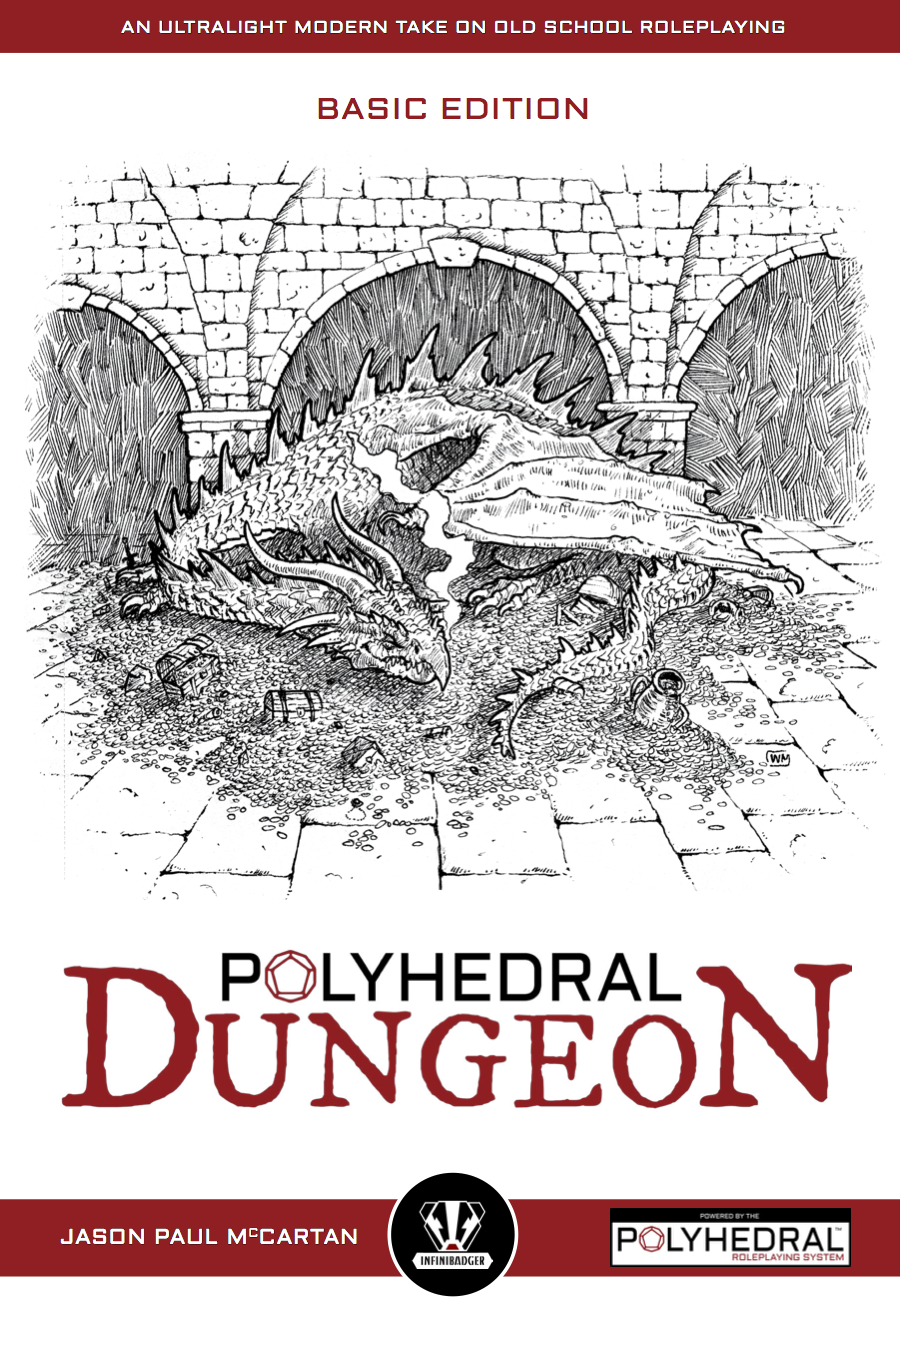 Polyhedral Dungeon